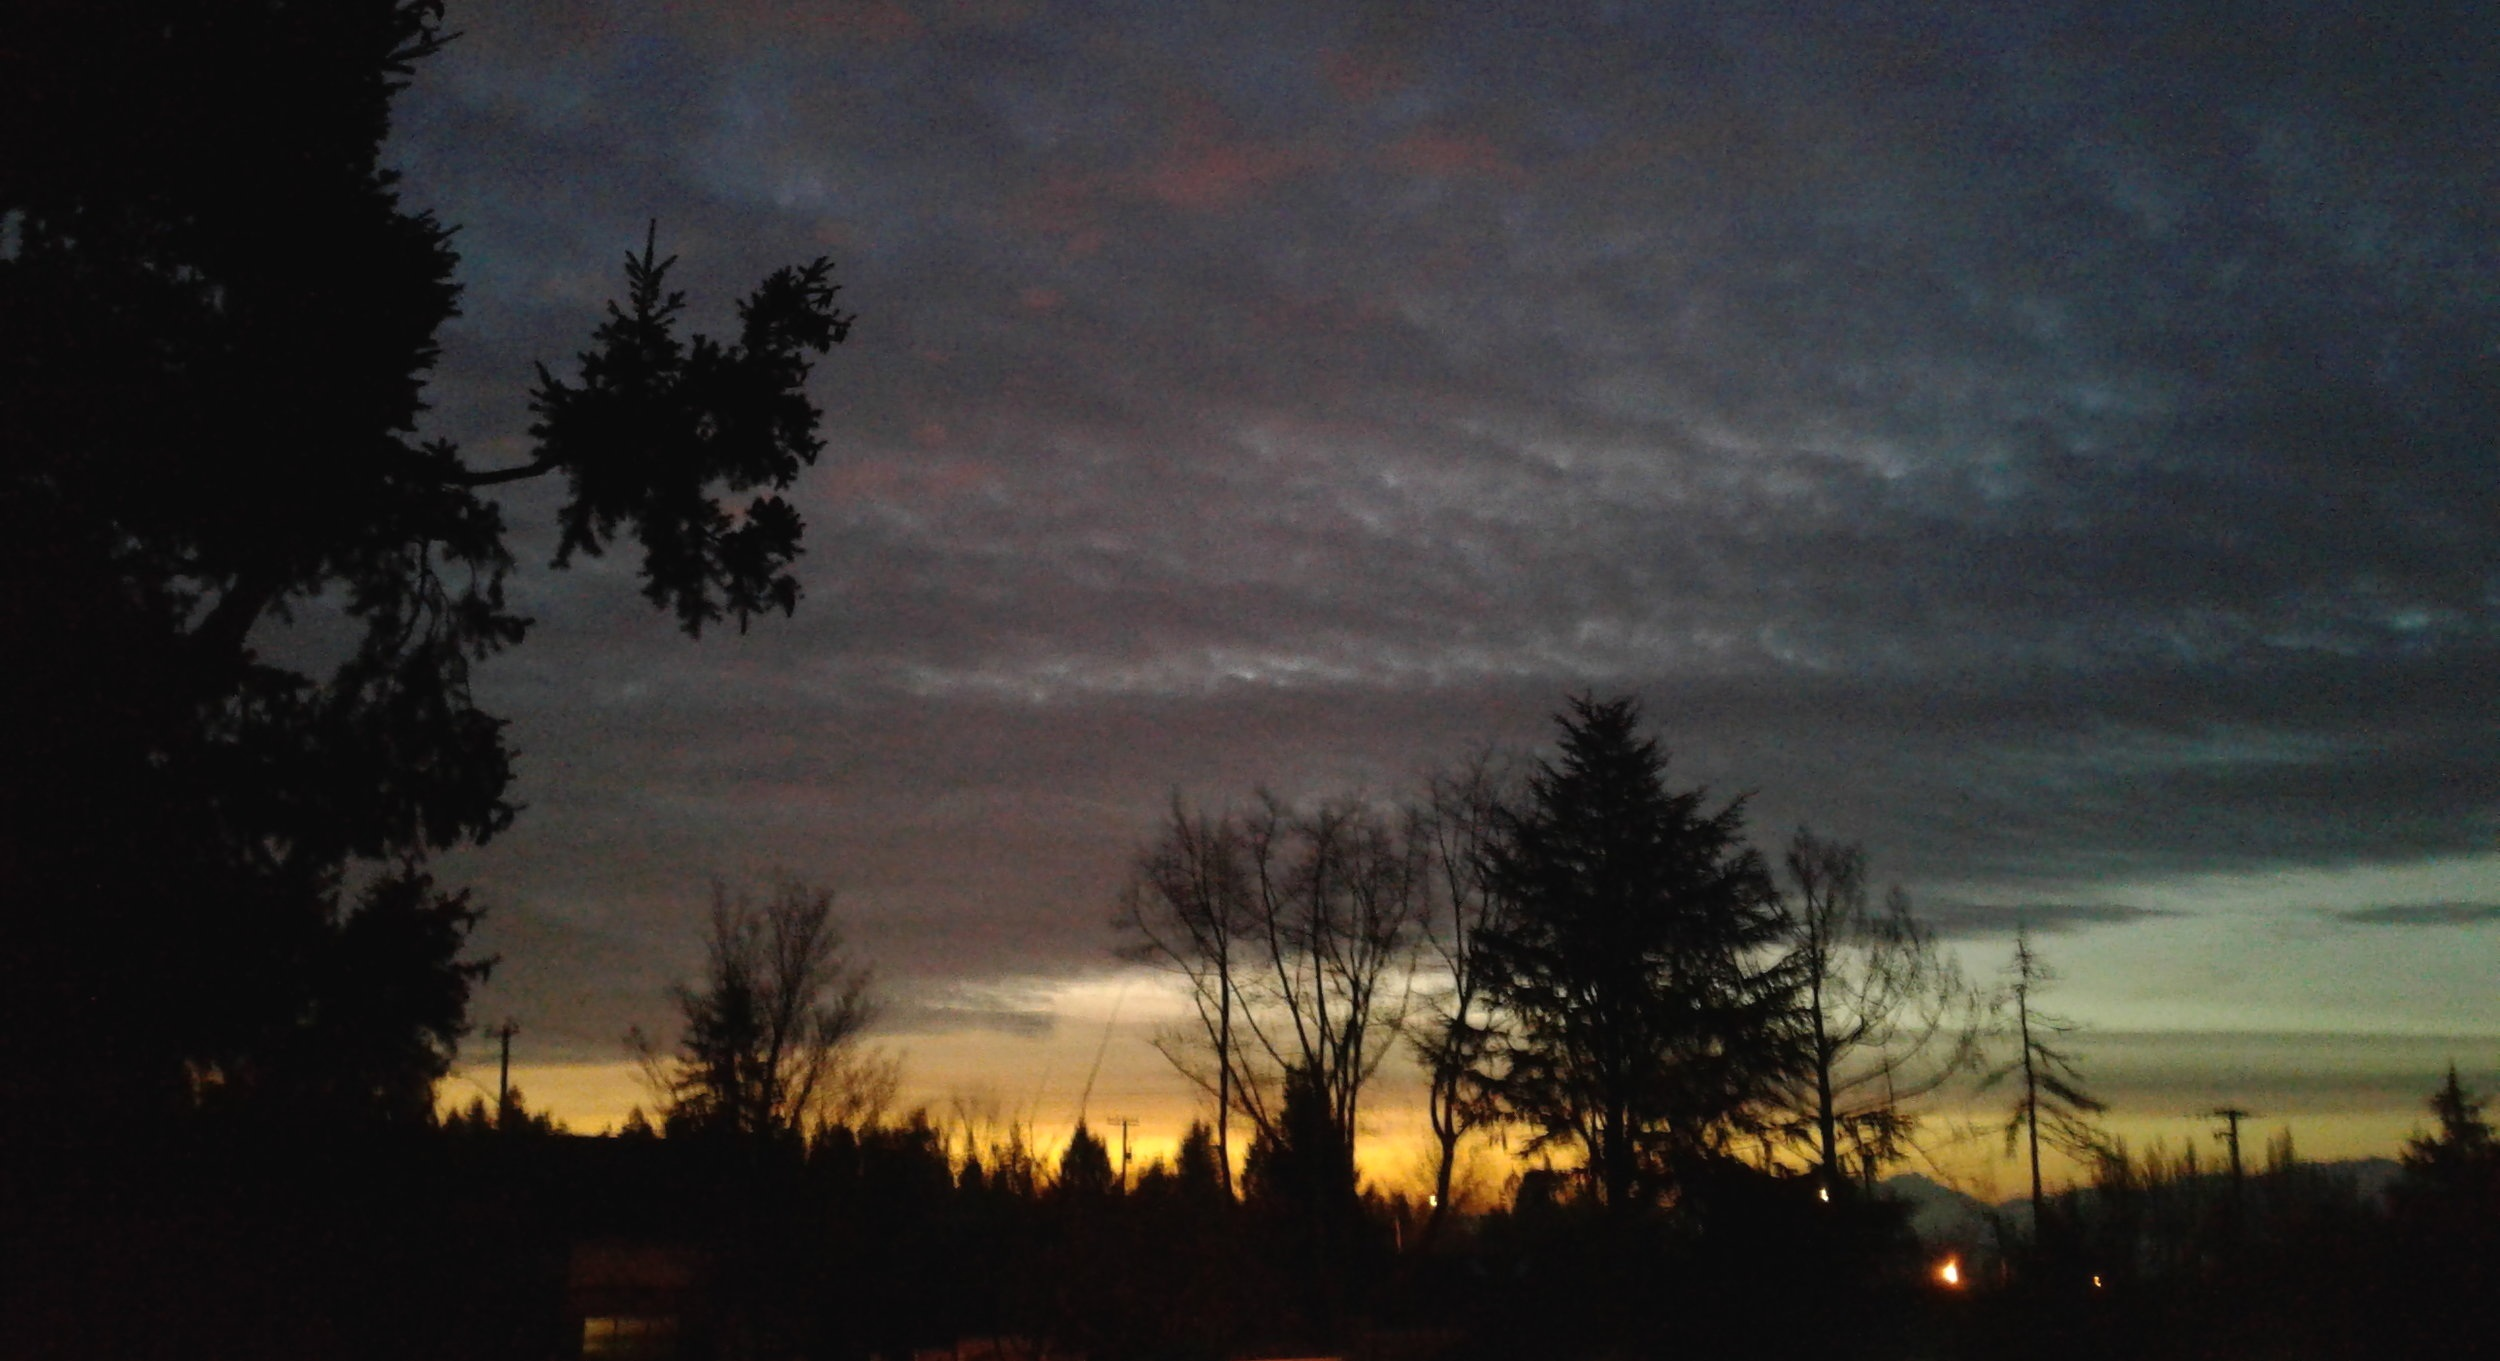 Sunrise from our breakfast table in Comox this morning